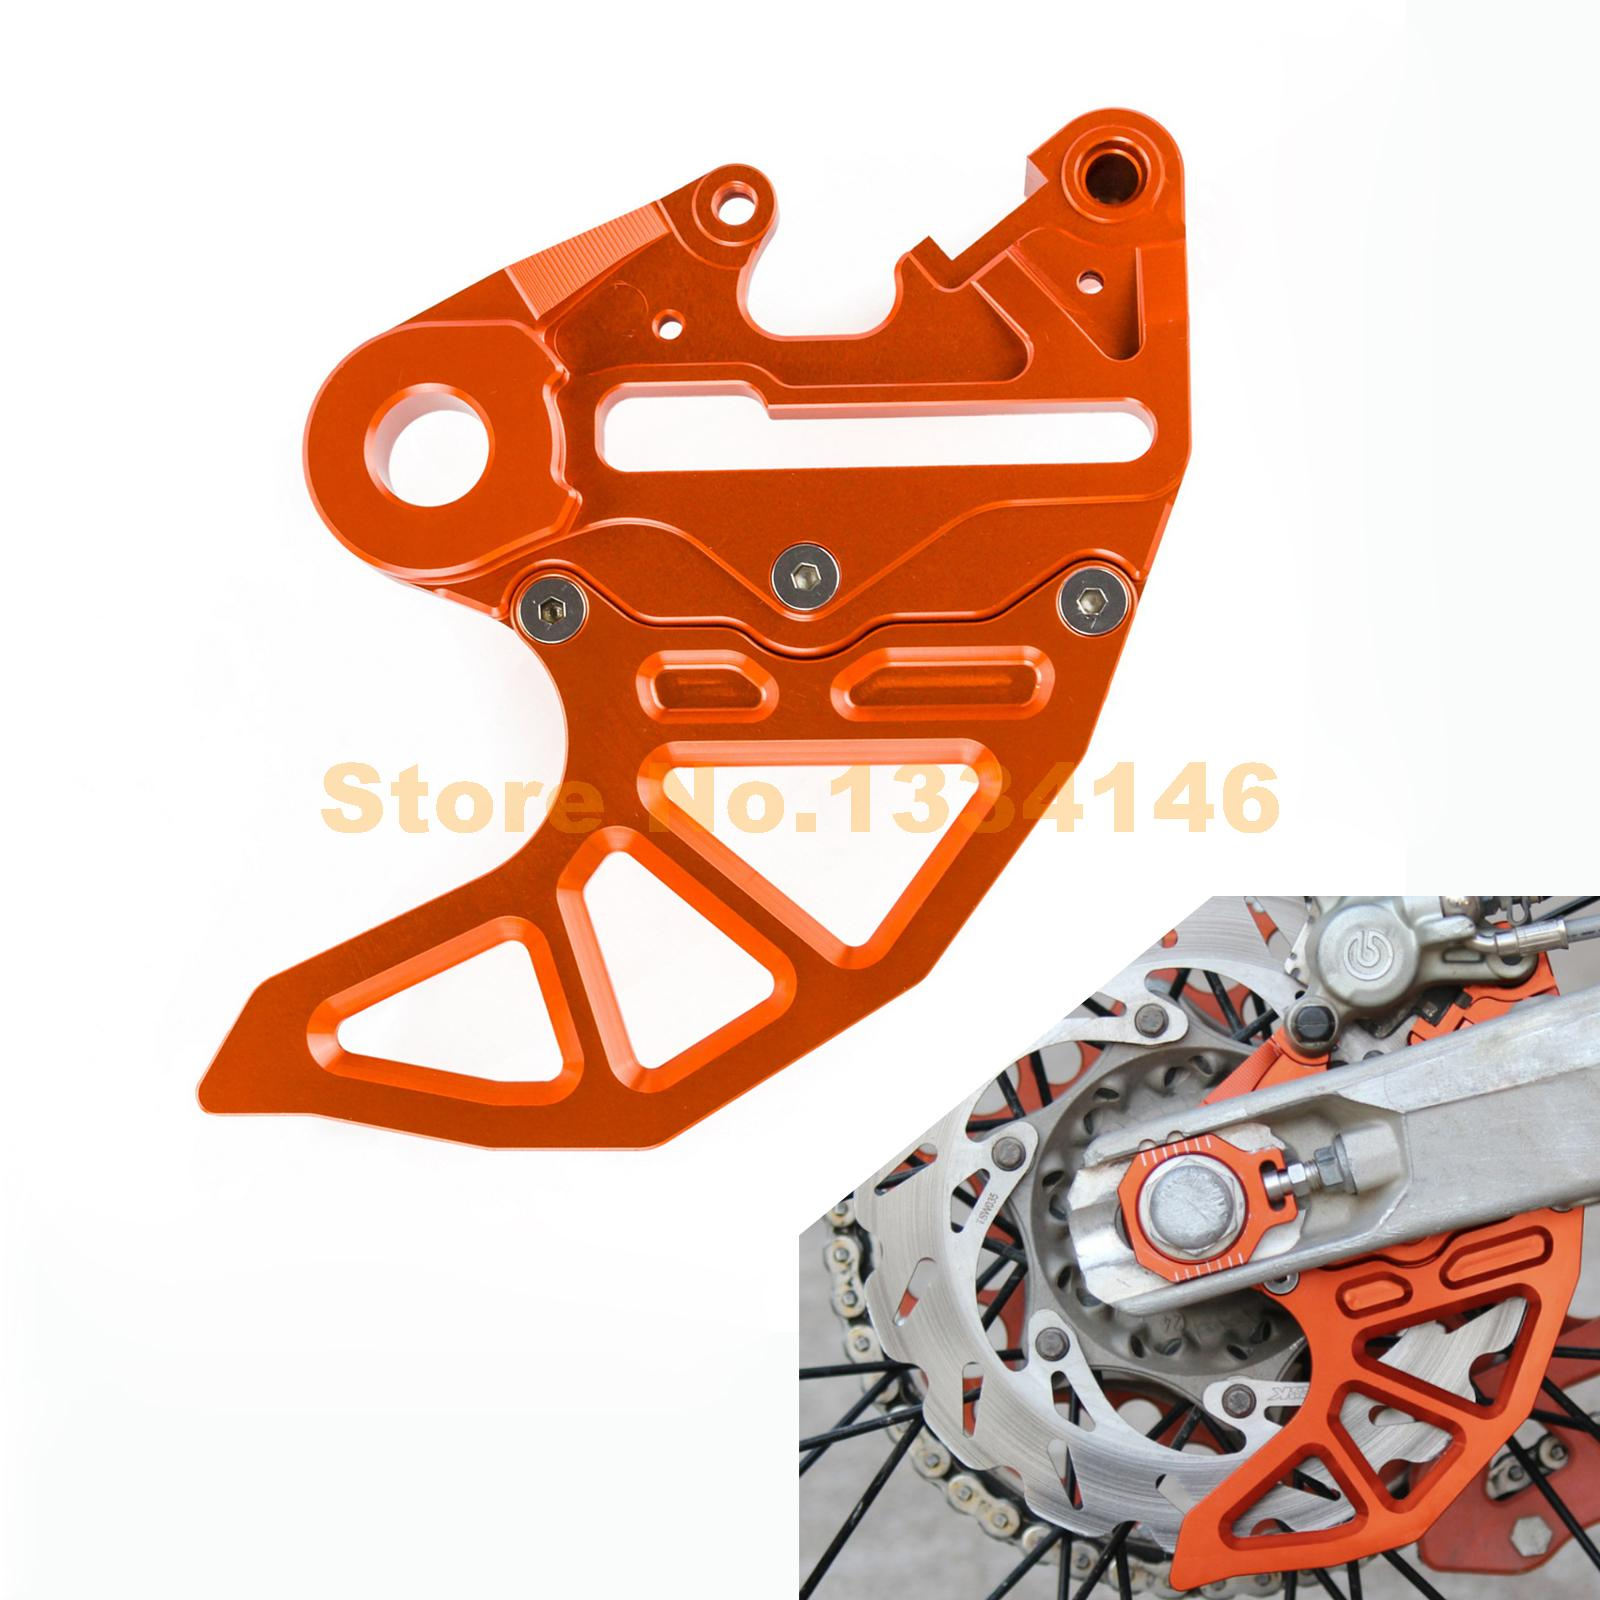 NICECNC Rear Brake Disc Rotor Guard With Caliper Support Bracket For KTM SX SX-F EXC EXC-F XC XC-F XCFW XC-W 125 250 350 450 525 motorcycle front and rear brake pads for ktm exc r450 2008 sx f 450 usd 2003 2008 xc f xcr w 450 2008 black brake disc pad